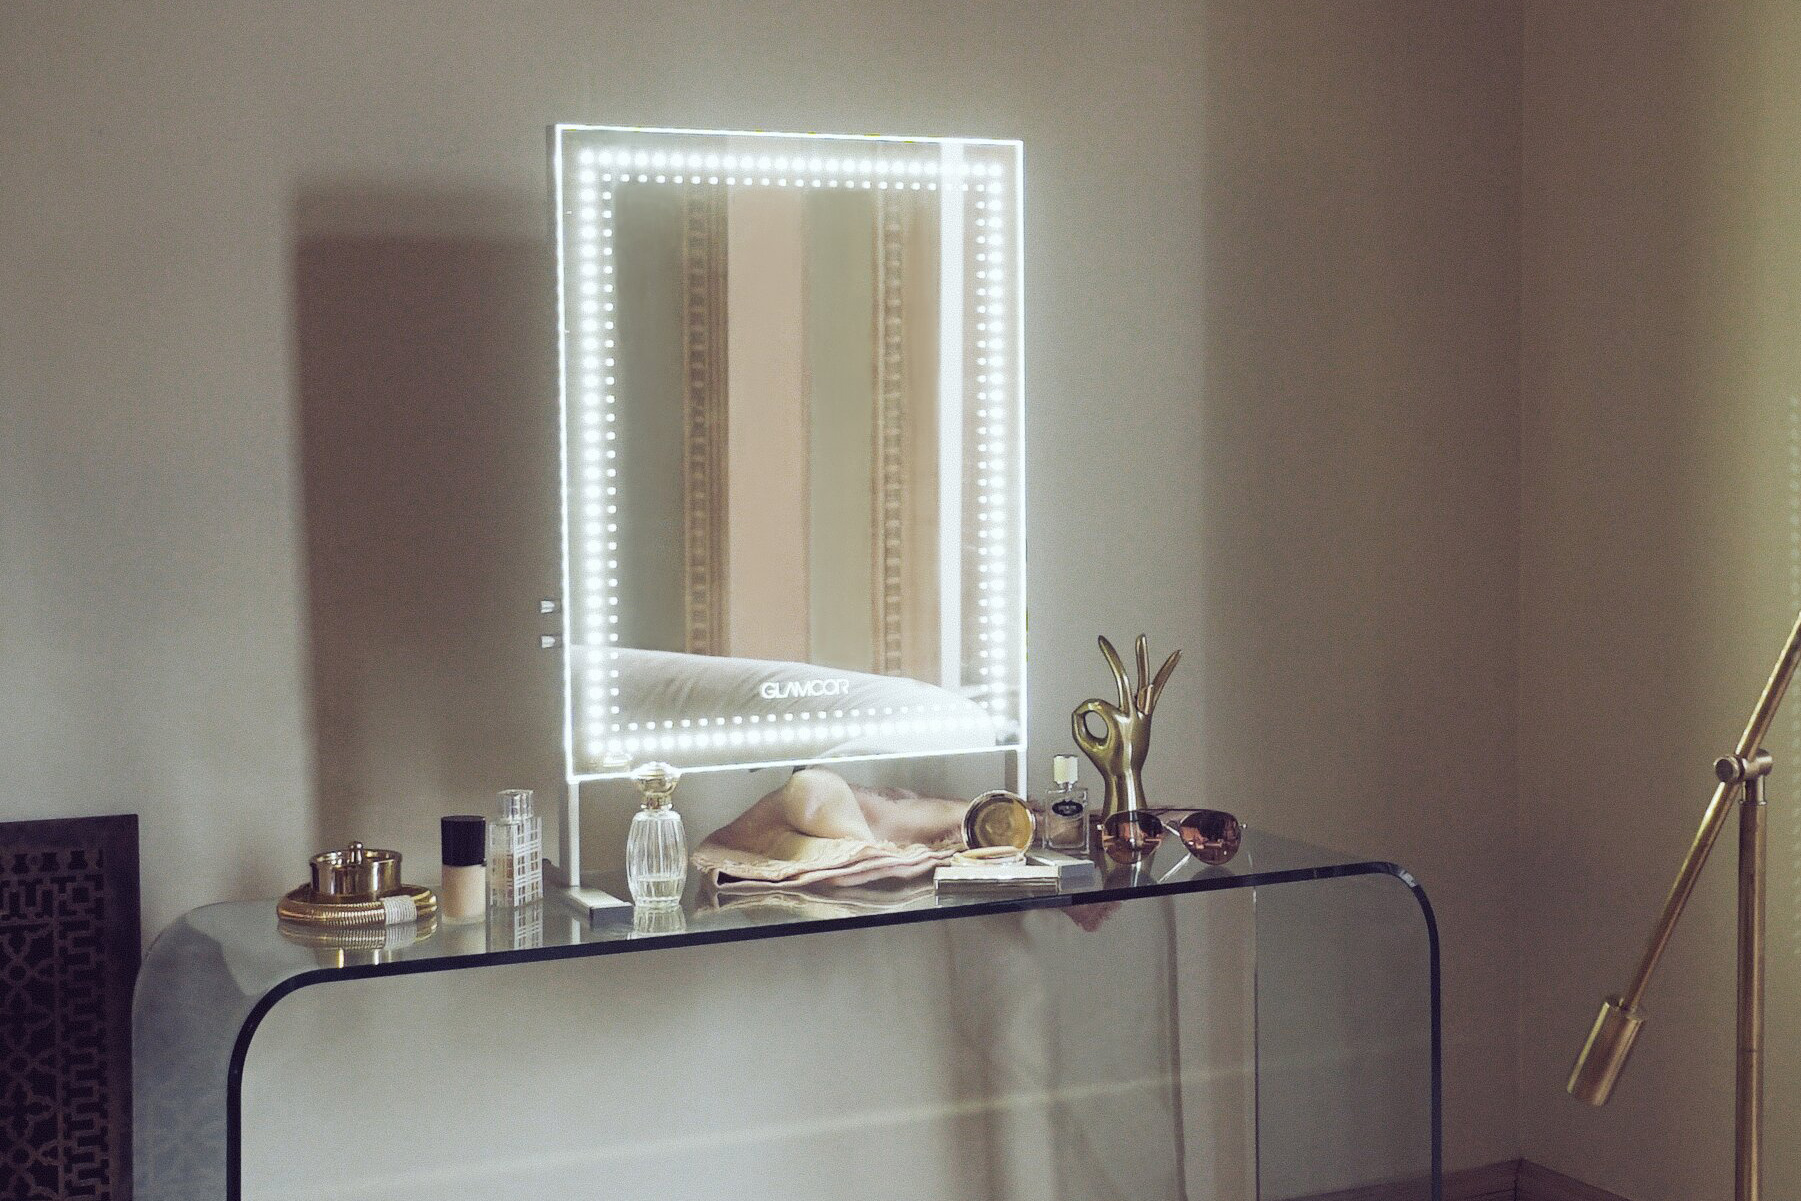 11 Best Lighted Makeup Mirrors In 2021, Is Led Mirror Good For Makeup